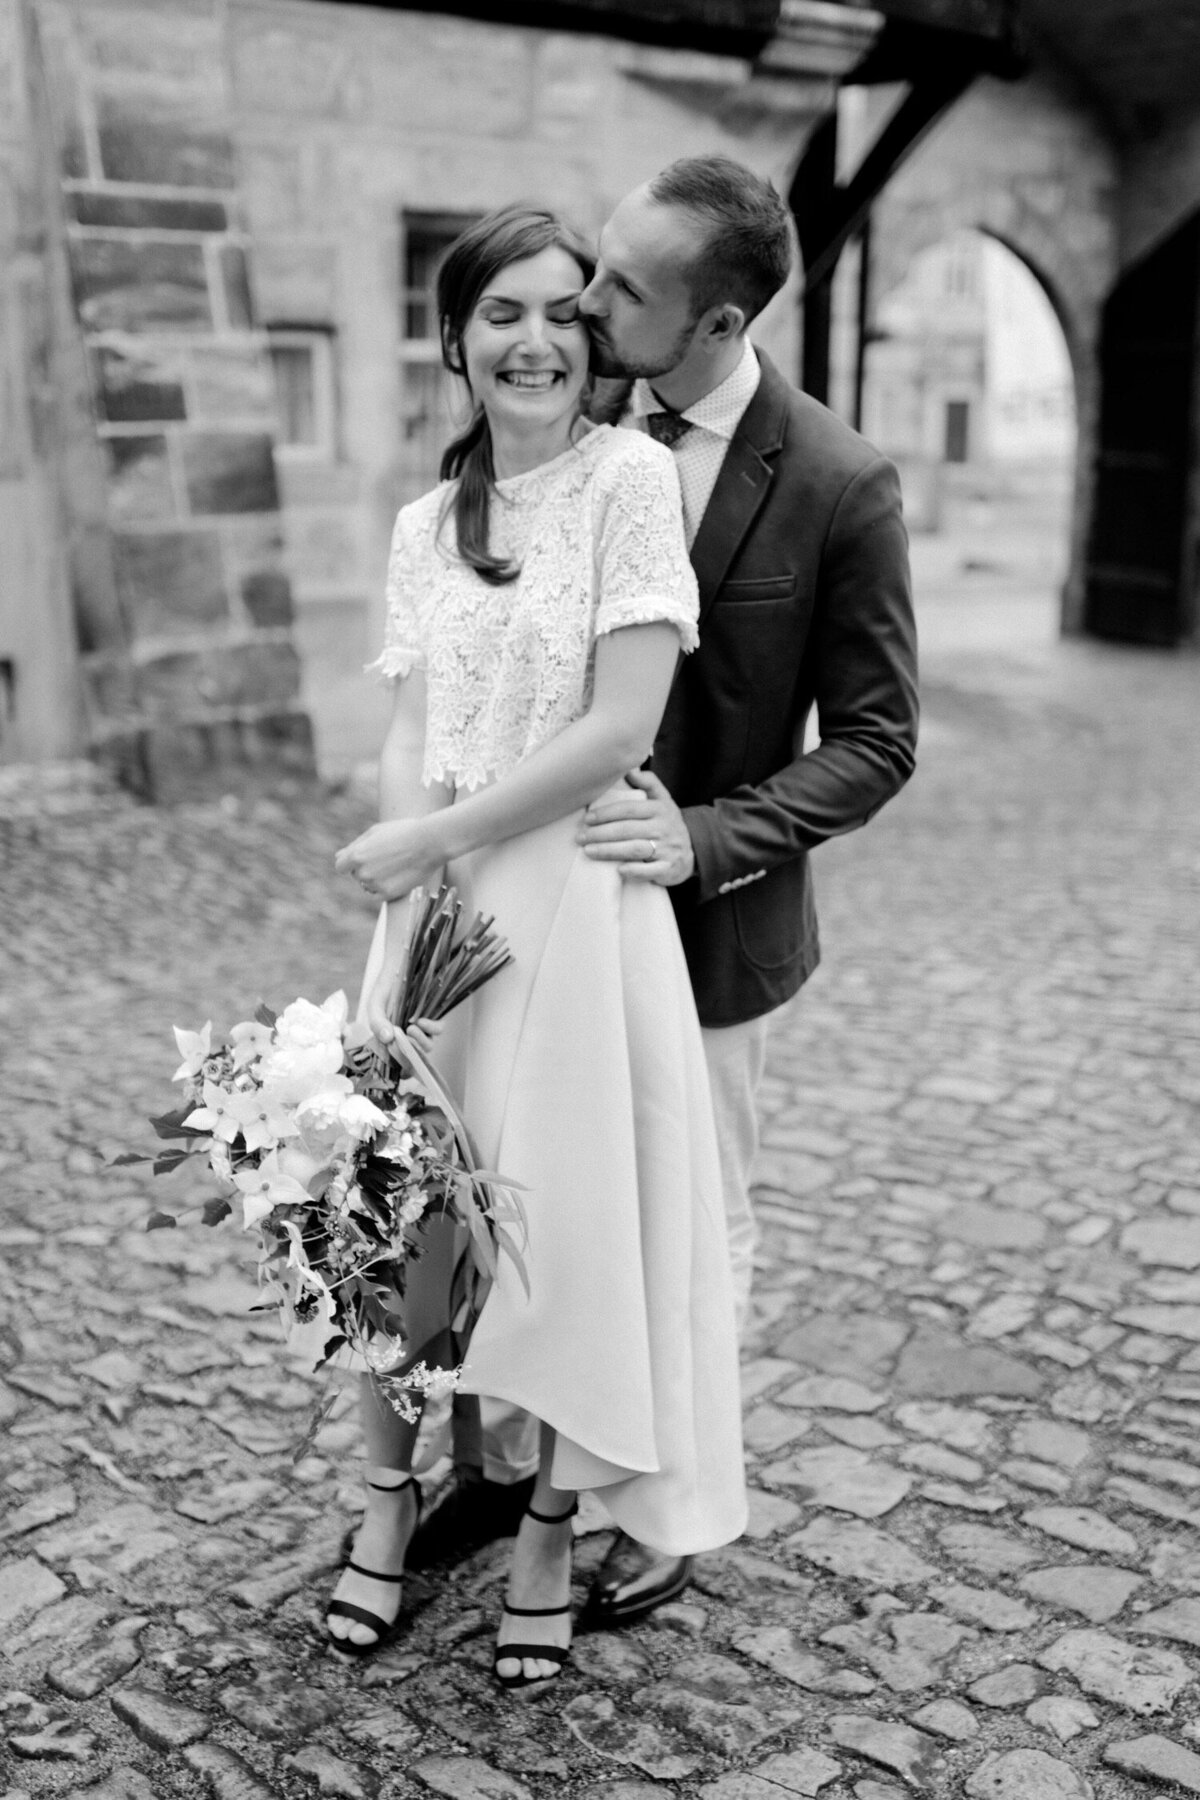 72_Italy_Luxury_Wedding_Photographer (58 von 72)_Flora and Grace is a luxury wedding photographer for elegant fine art weddings in Italy and Europe. Discover their fashion inspired photography.